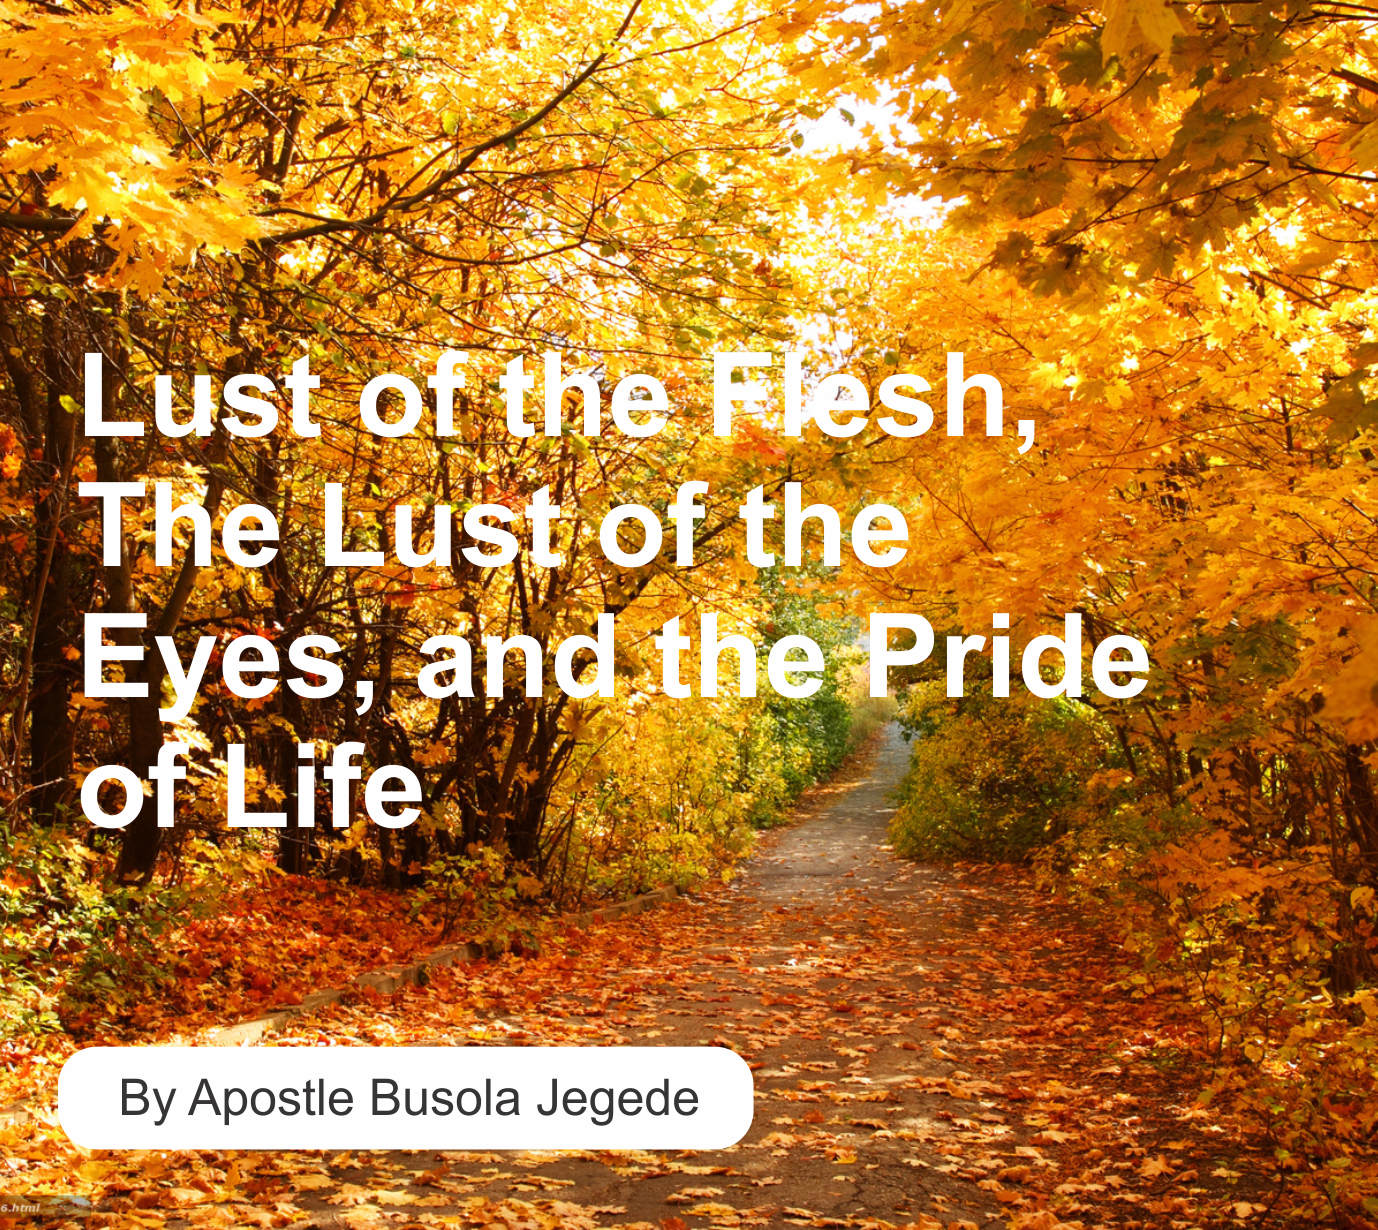 Lust of the Flesh, The Lust of the Eyes, and the Pride of Life